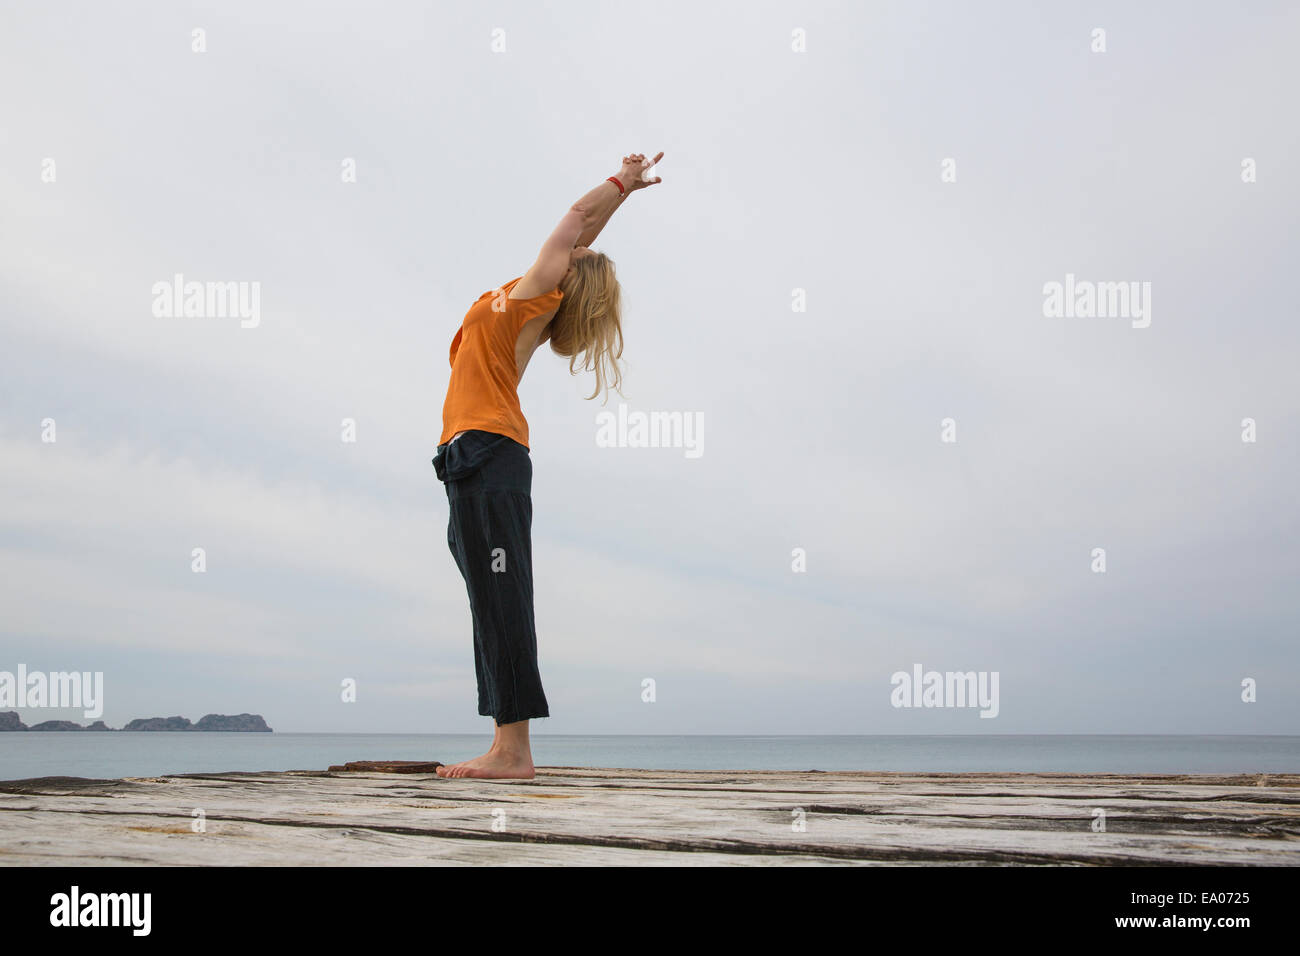 Mid adult woman stretching back practicing yoga on wooden sea pier - Stock Image